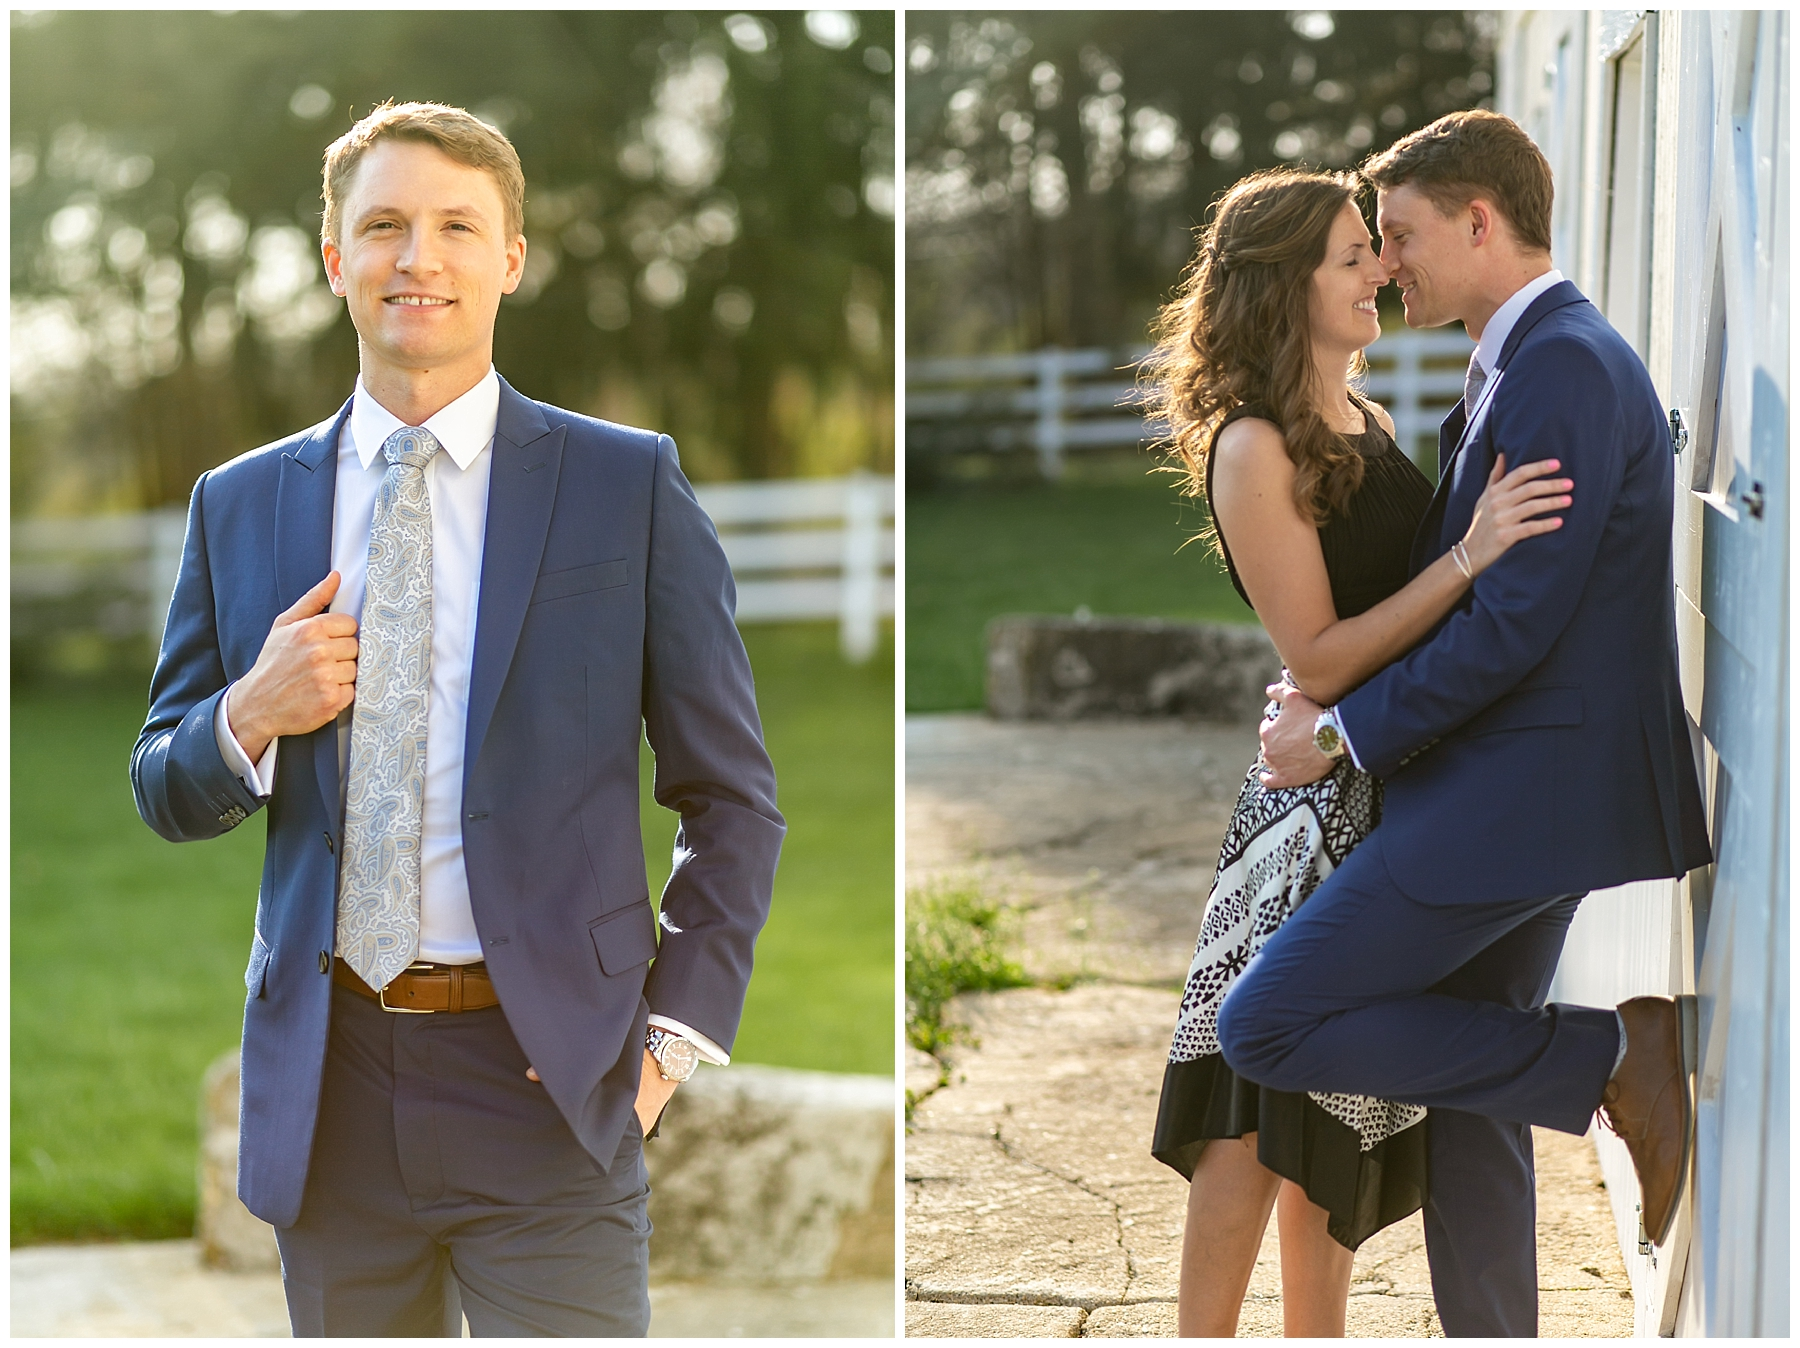 Chelsea Phil Private Estate Engagement Living Radiant Photography photos color_0014.jpg